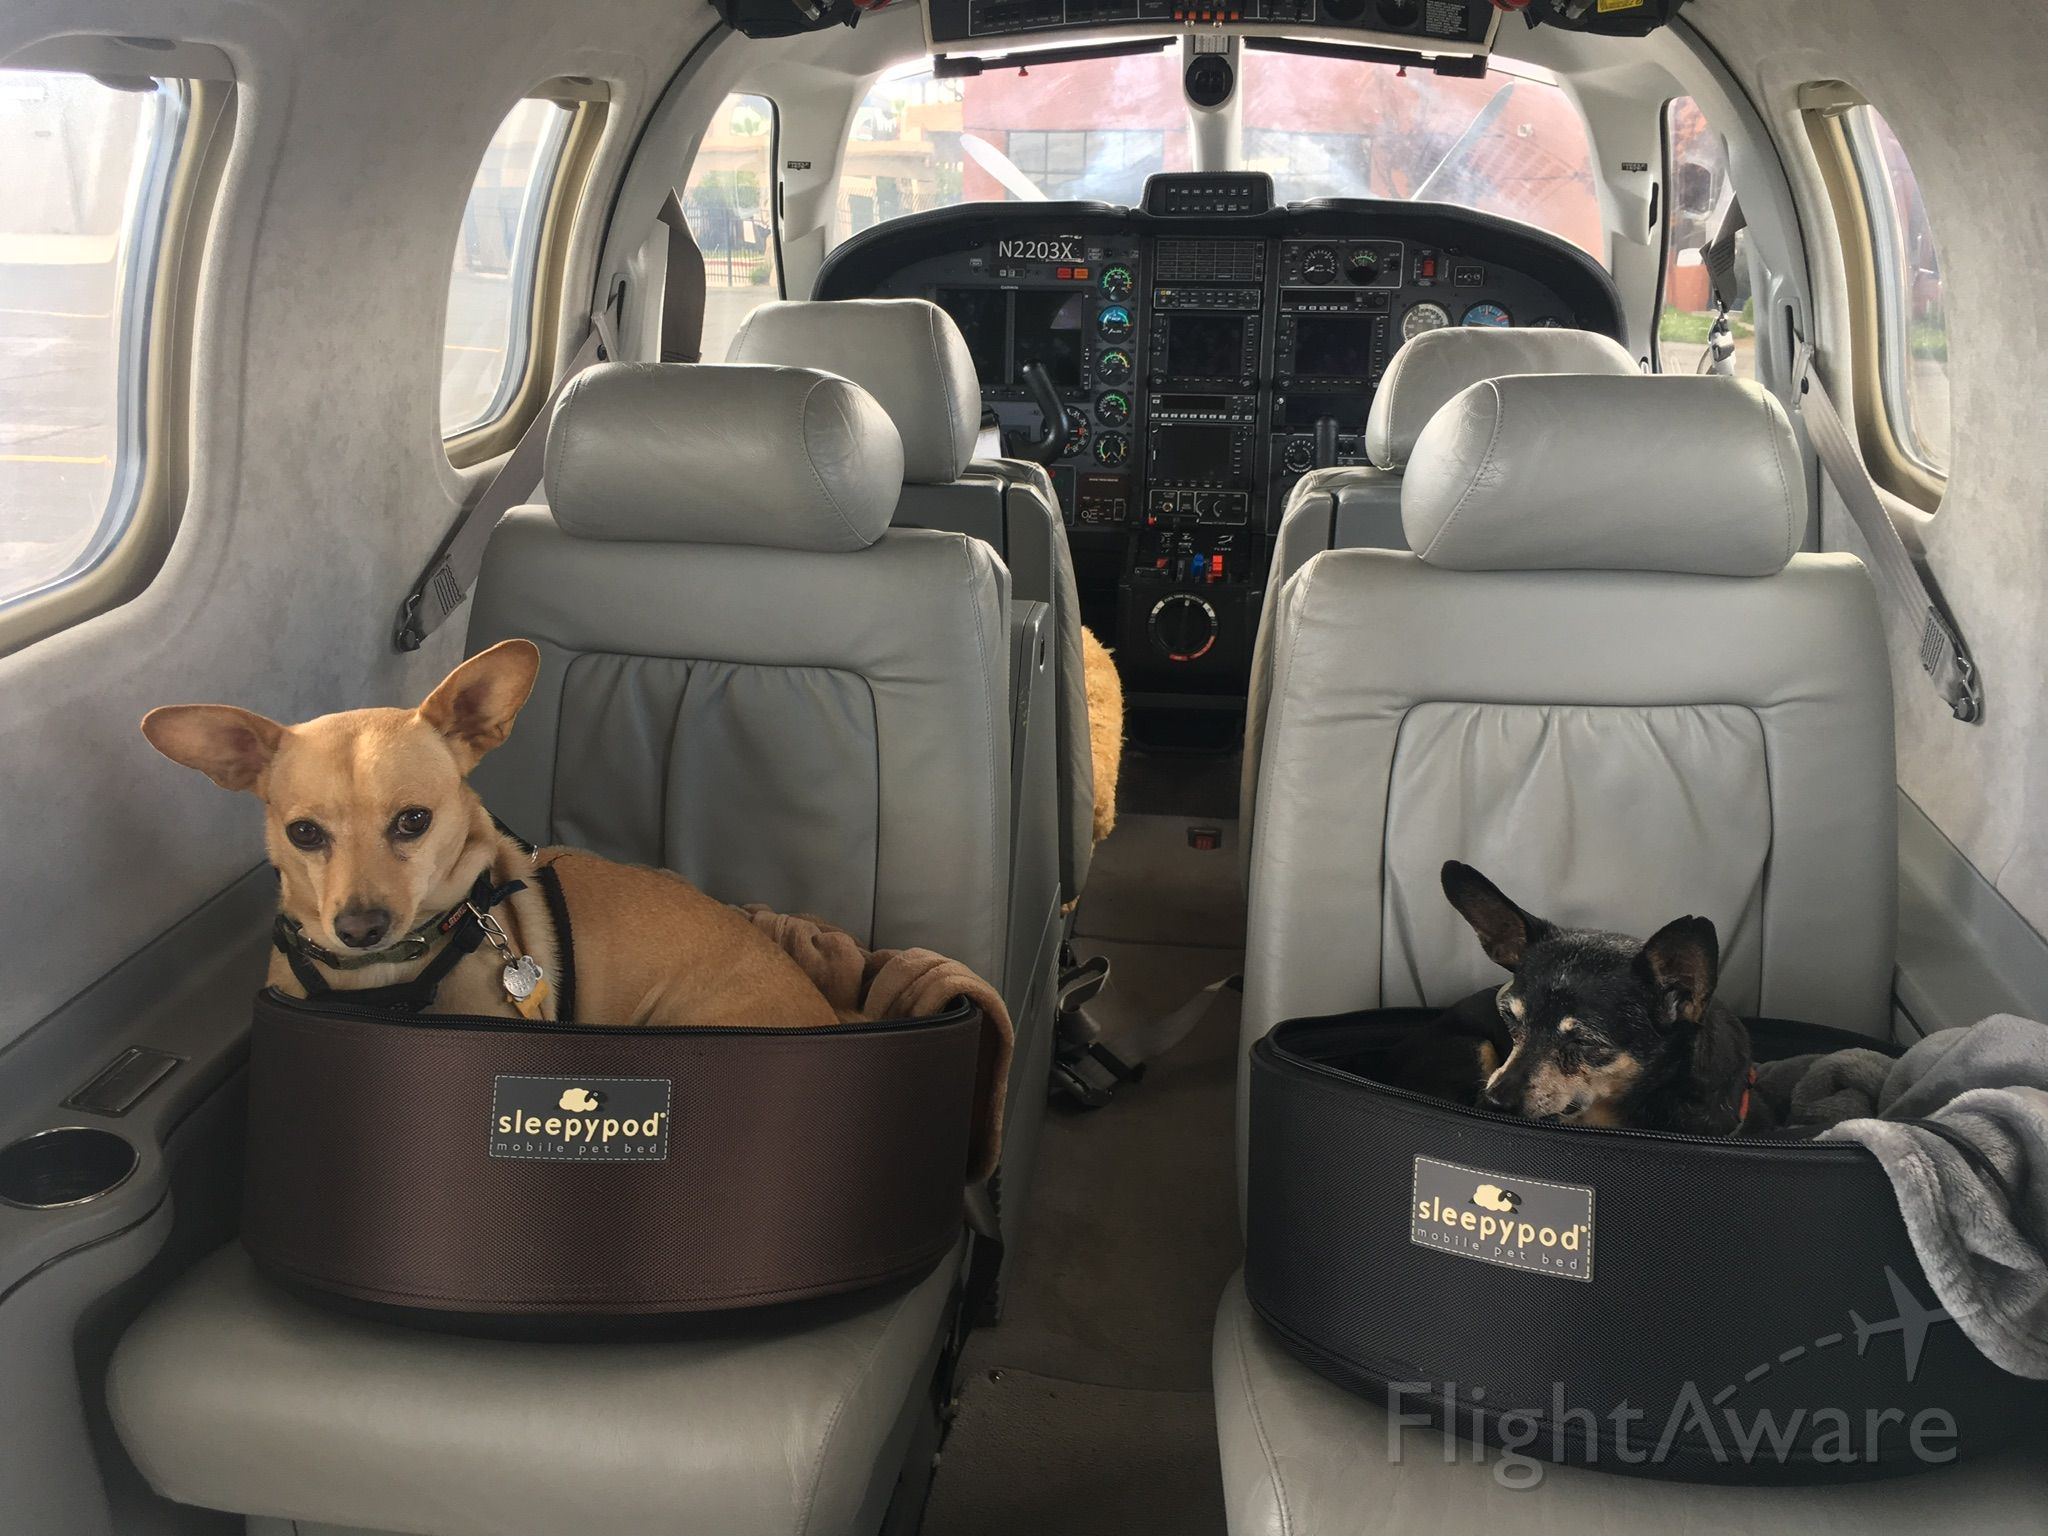 Socata TBM-700 (N2203X) - Two of the most spoiled little mutts in the world.